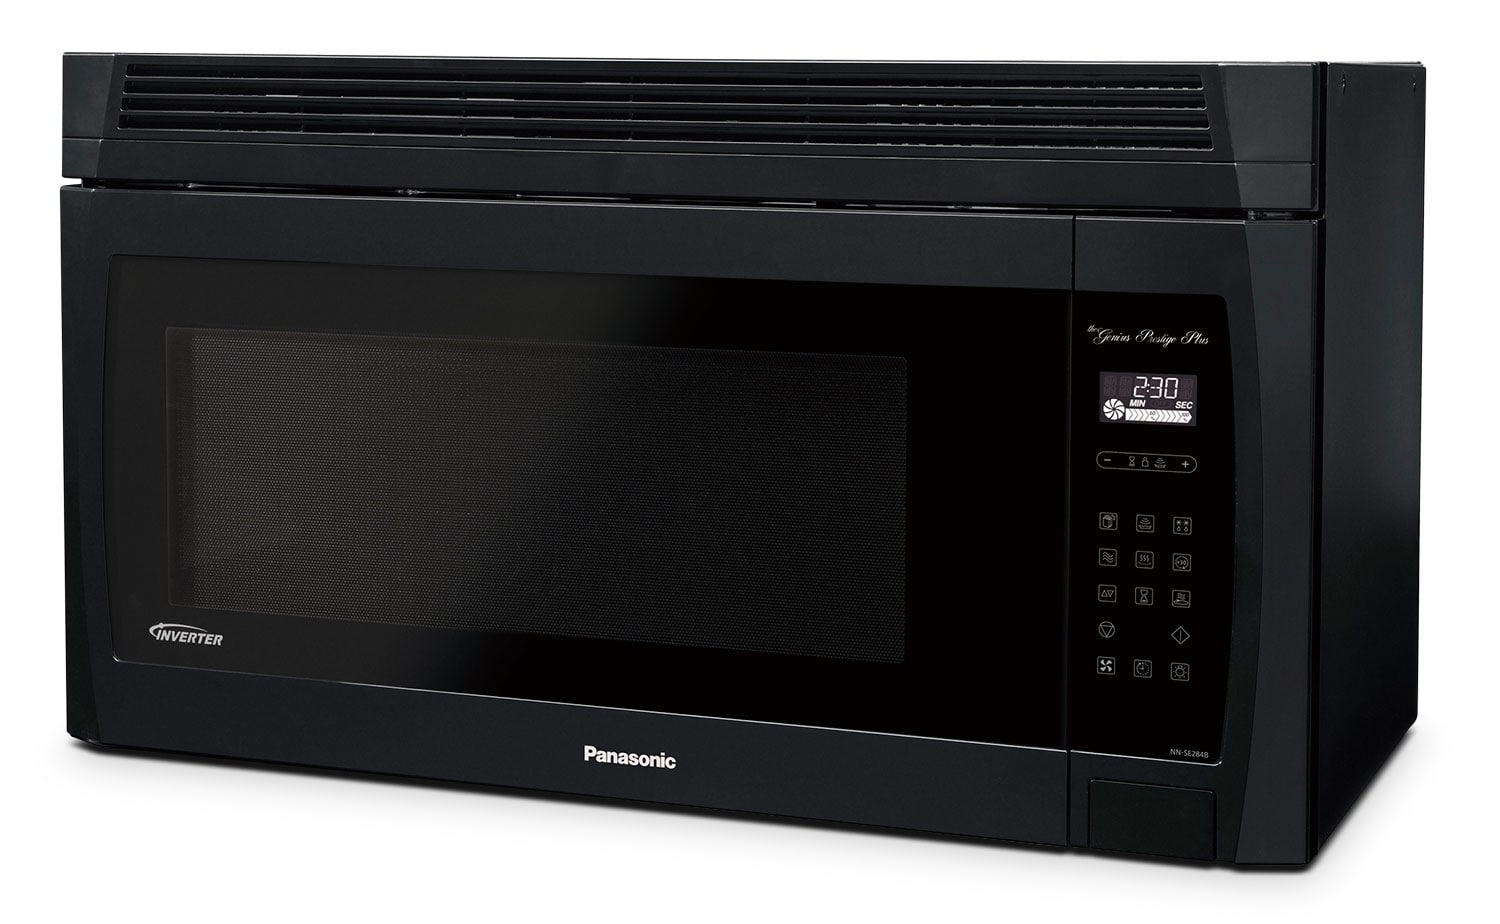 Panasonic® 2.0 Cu. Ft. Genius® Prestige® Plus Over-the-Range Microwave Oven - Black